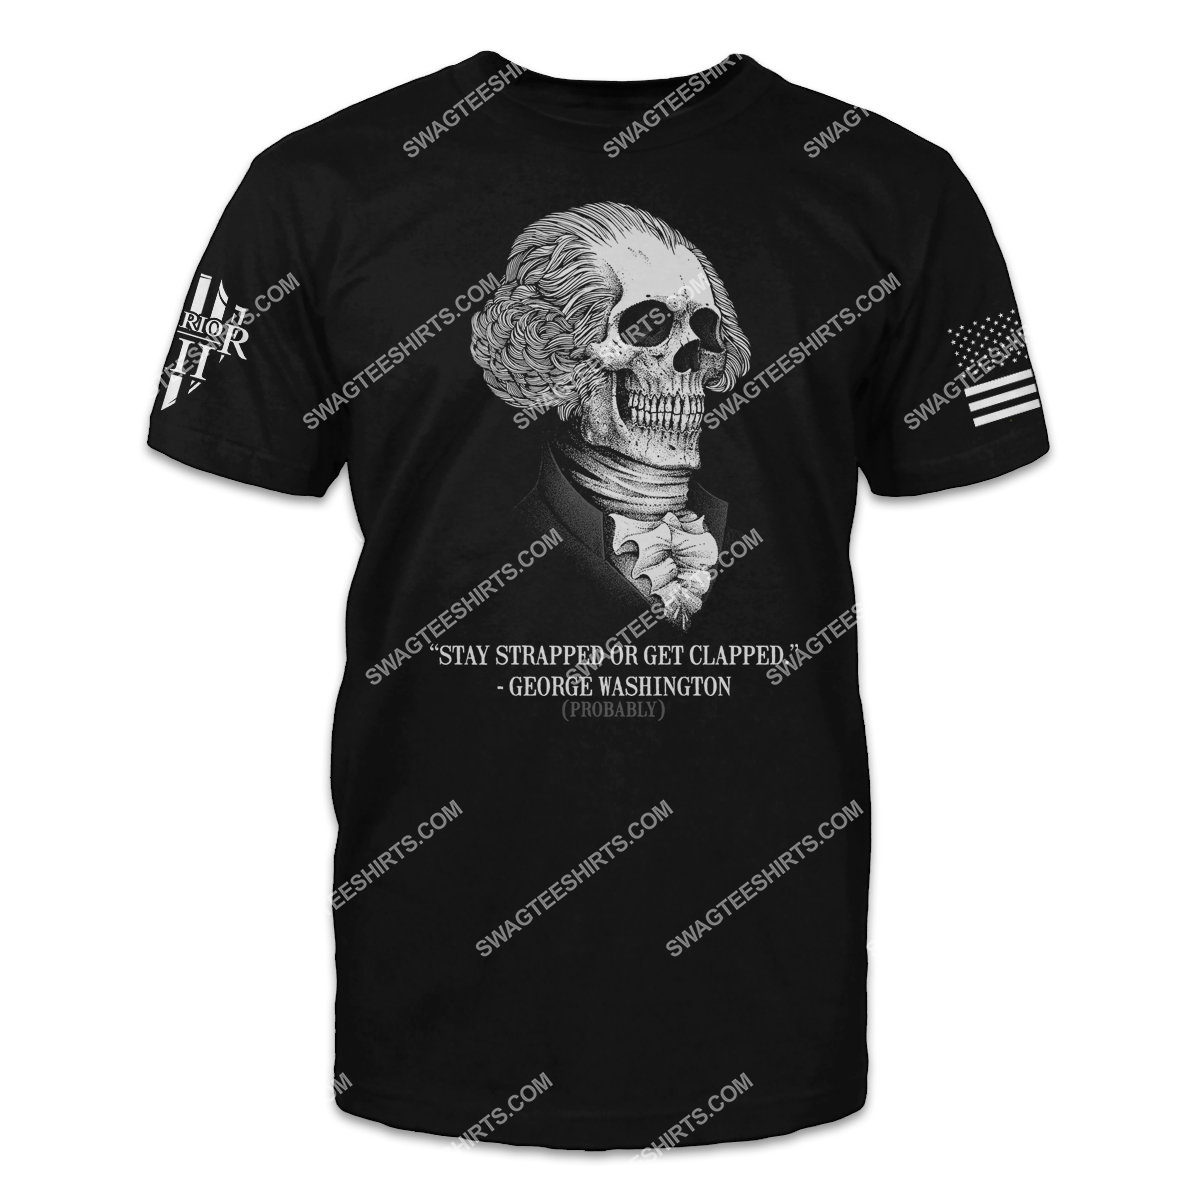 stay strapped or get clapped george washington shirt 1 - Copy